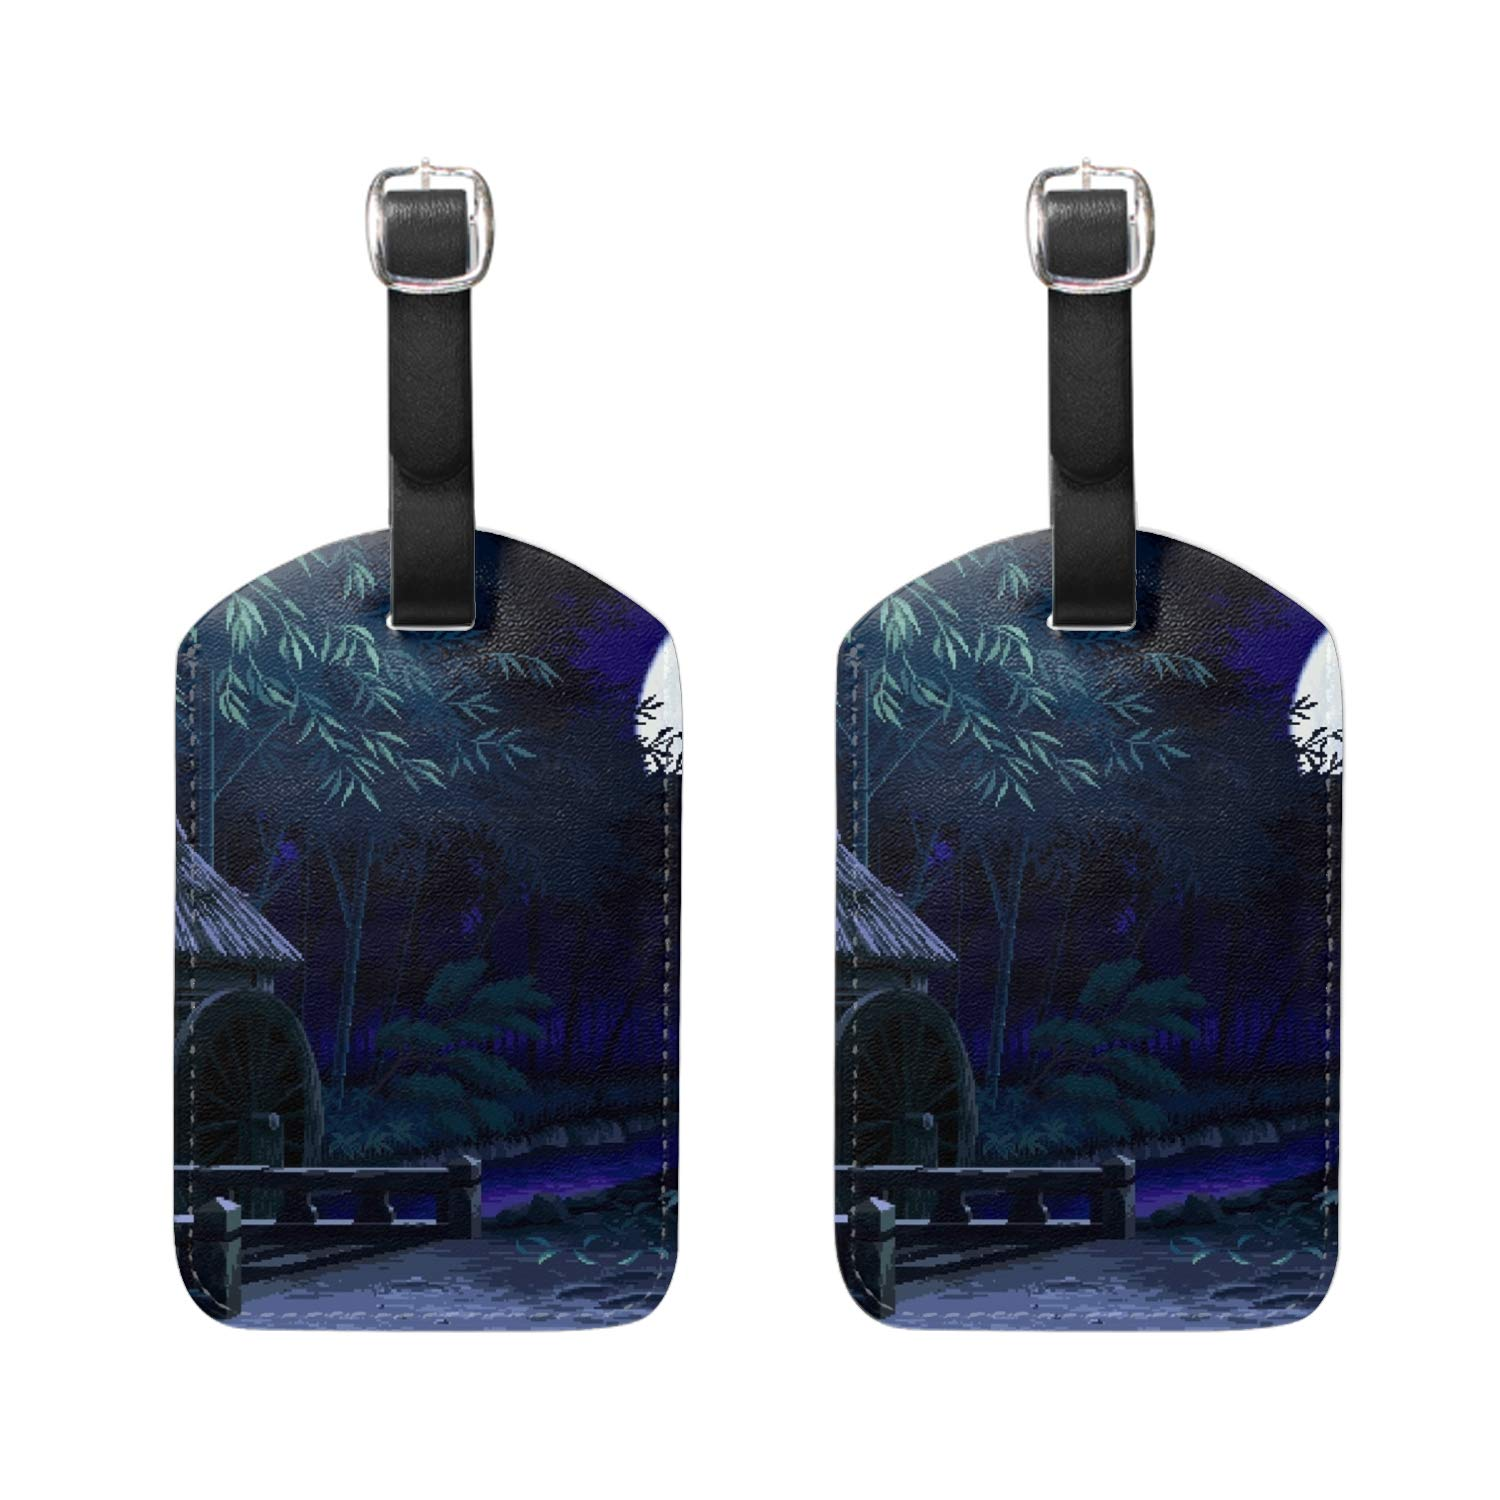 f247c51bb054 Amazon.com | Set of 2 Luggage Tags:Crow Death Grim Reapers - Bag ...